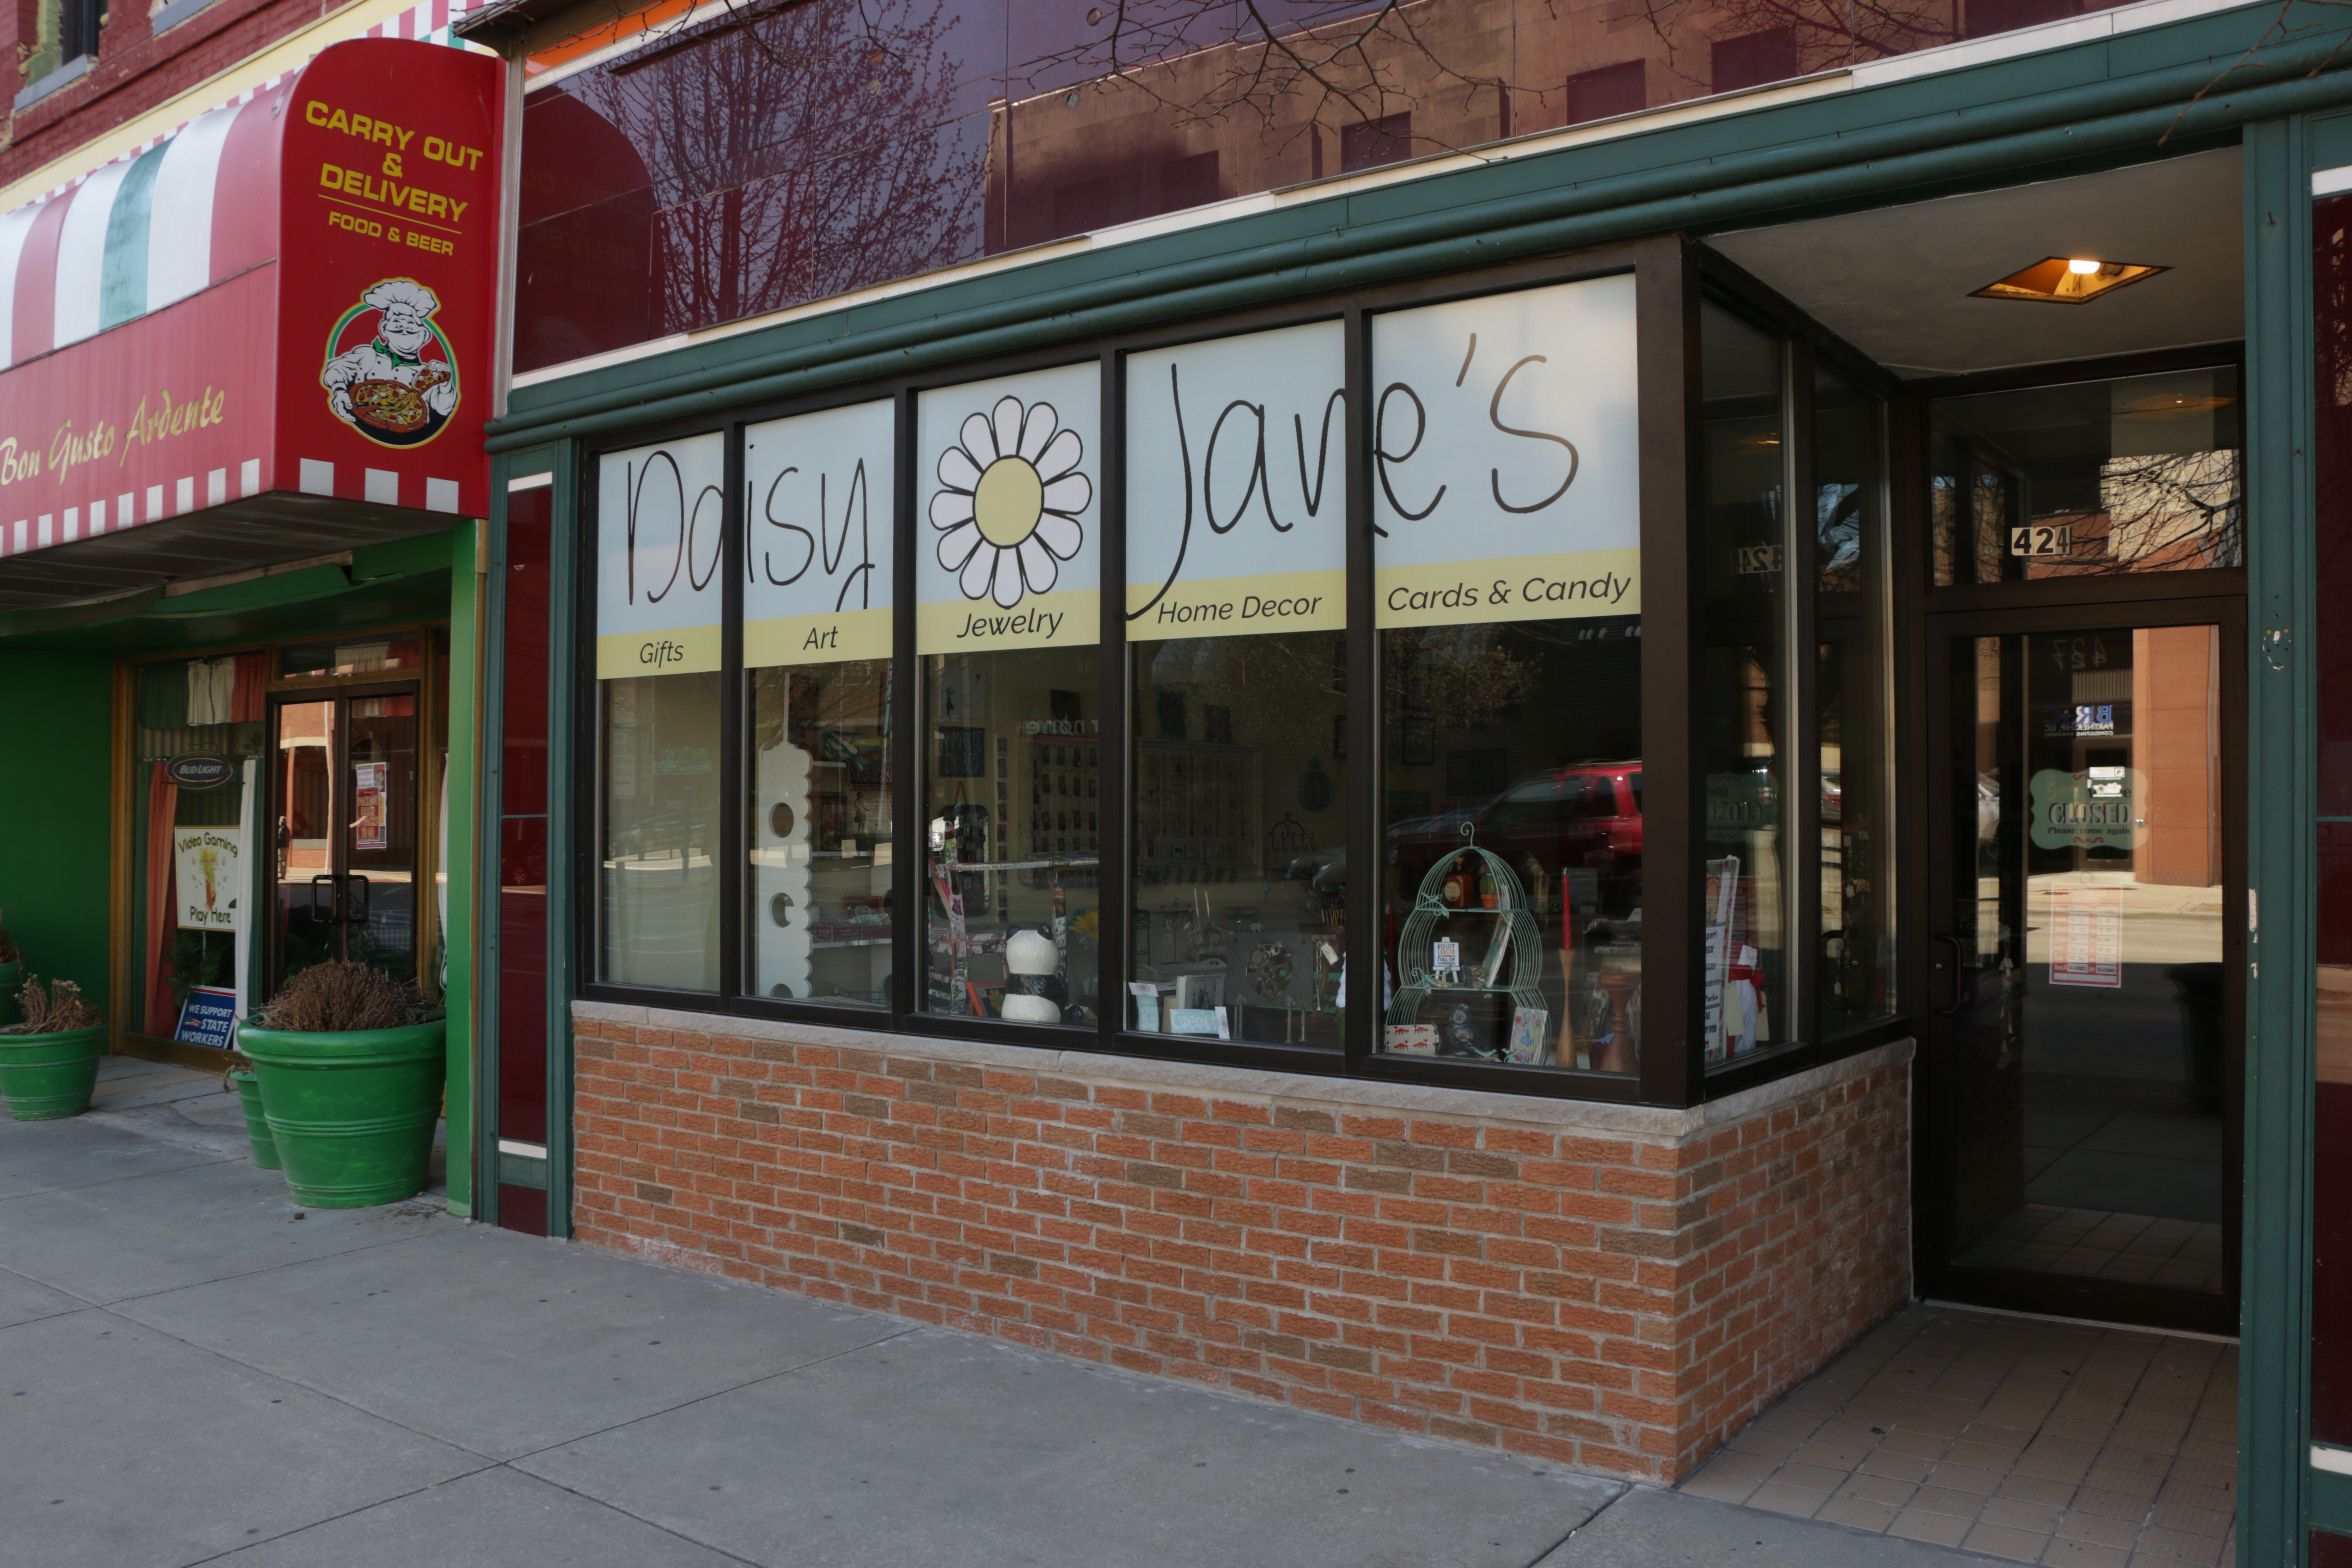 Daisy Jane's to hold grand opening downtown